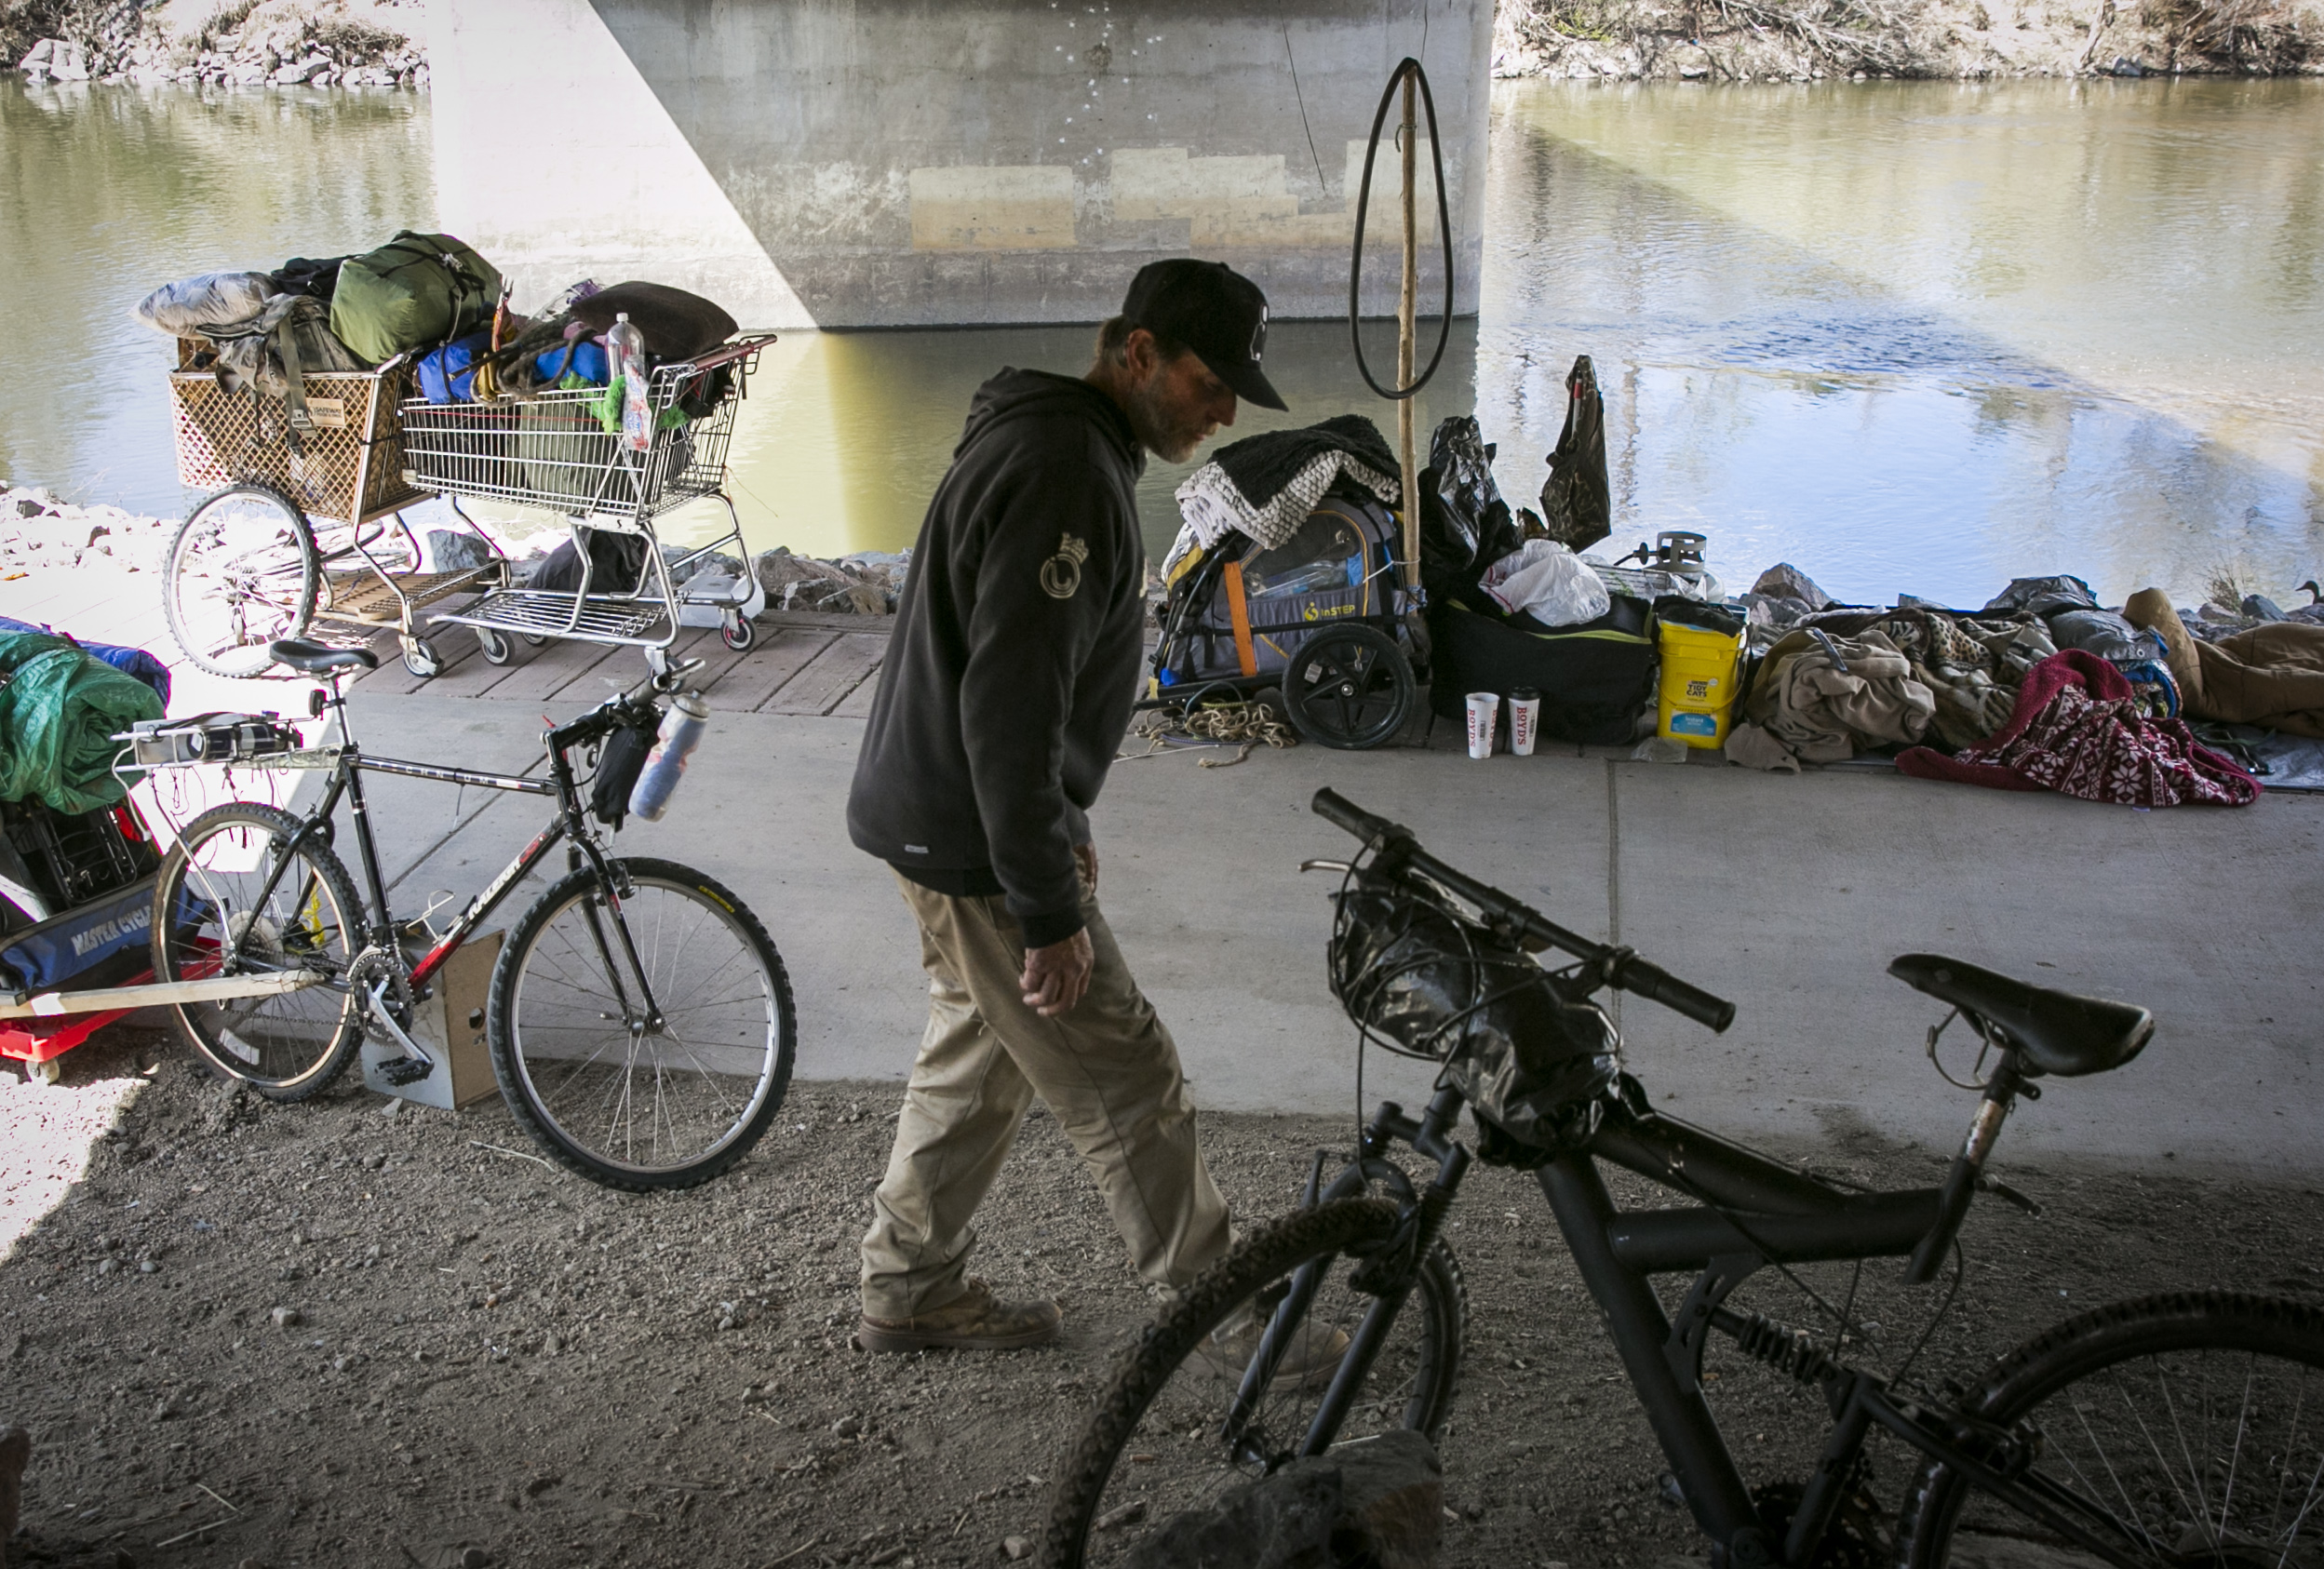 Robin Kendrick, who's homeless, stands amid shopping carts. bicycles and other homeless people's possessions near the South Platte River on Friday, April 1, 2016.